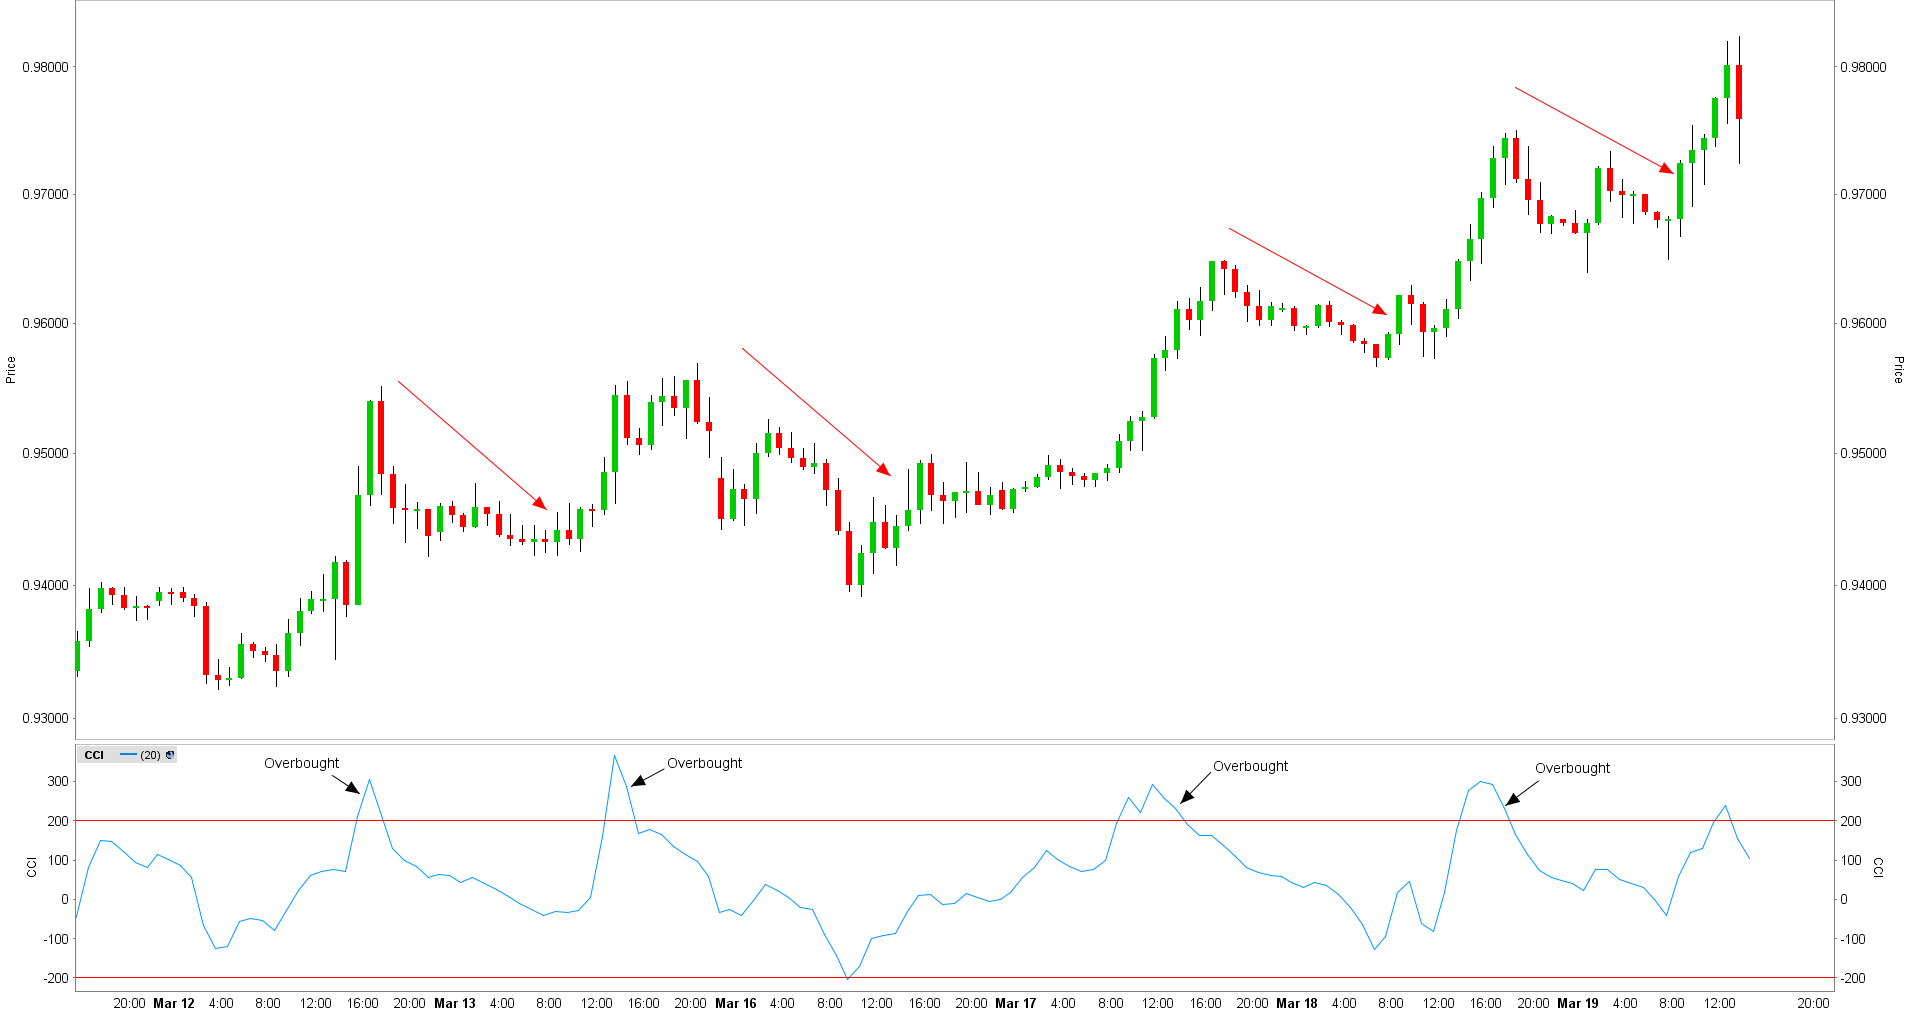 Commodity channel index overbought